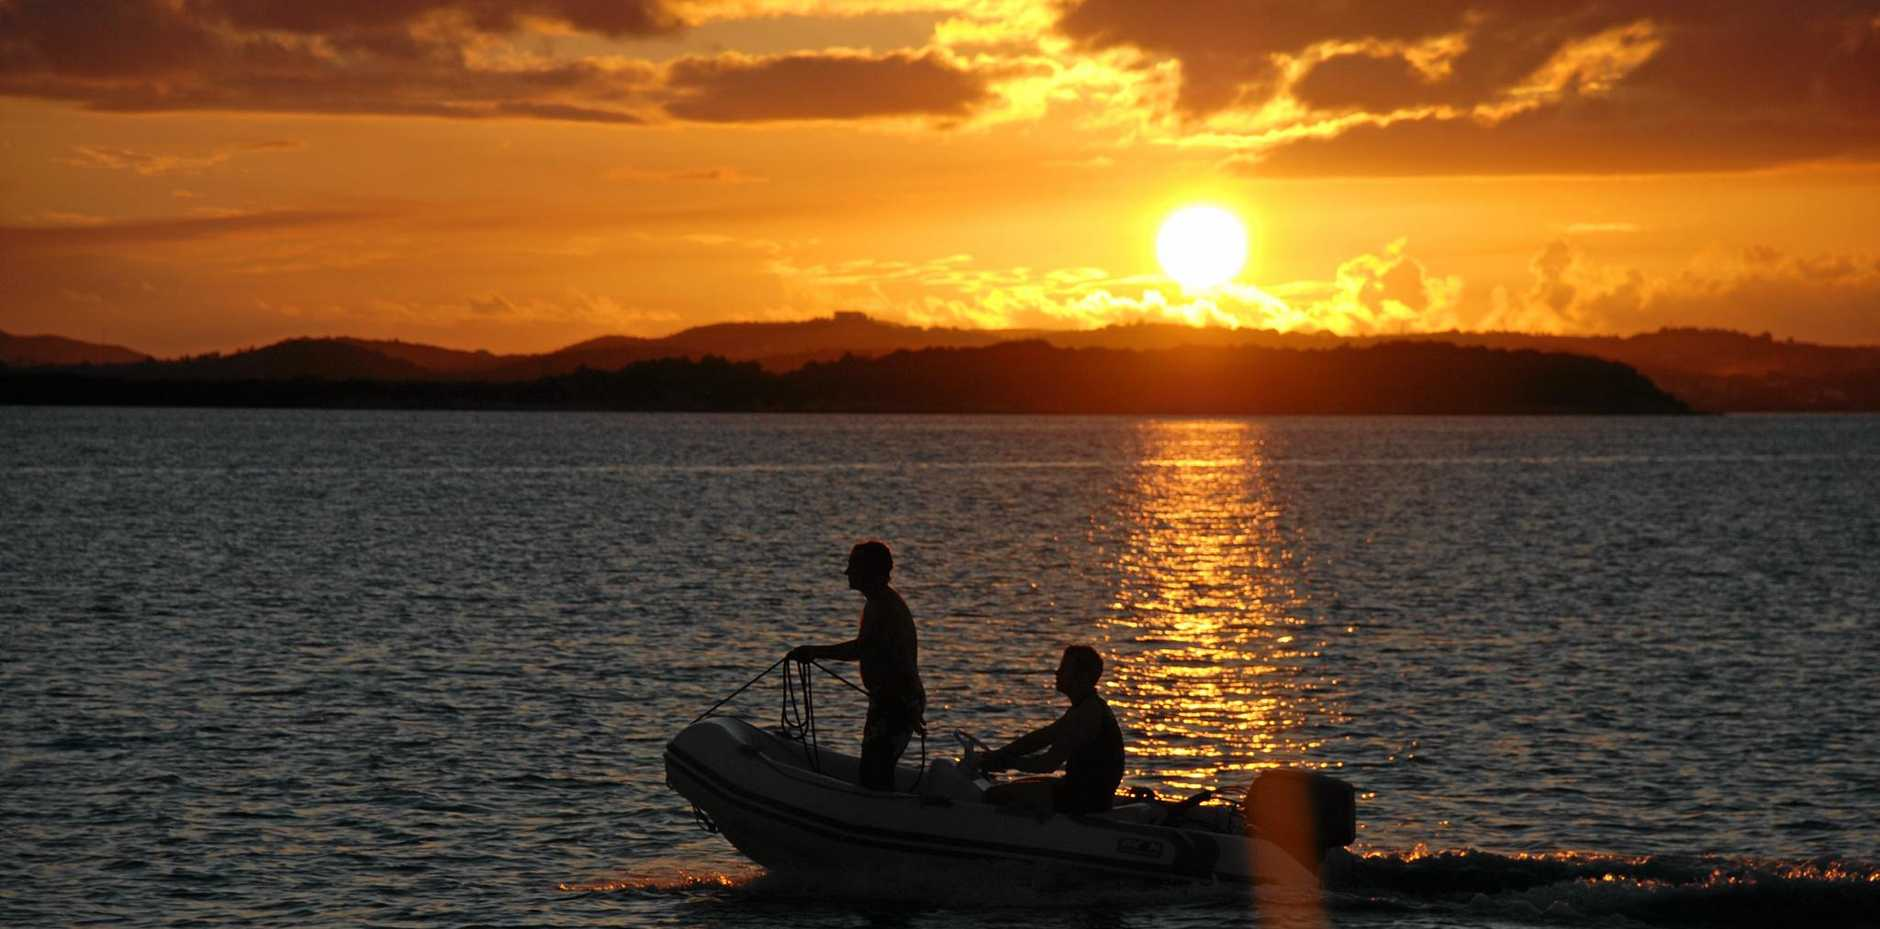 An Airlie Beach man has faced a Mackay court for sailing while drunk, after he was caught rowing a dinghy to shore.